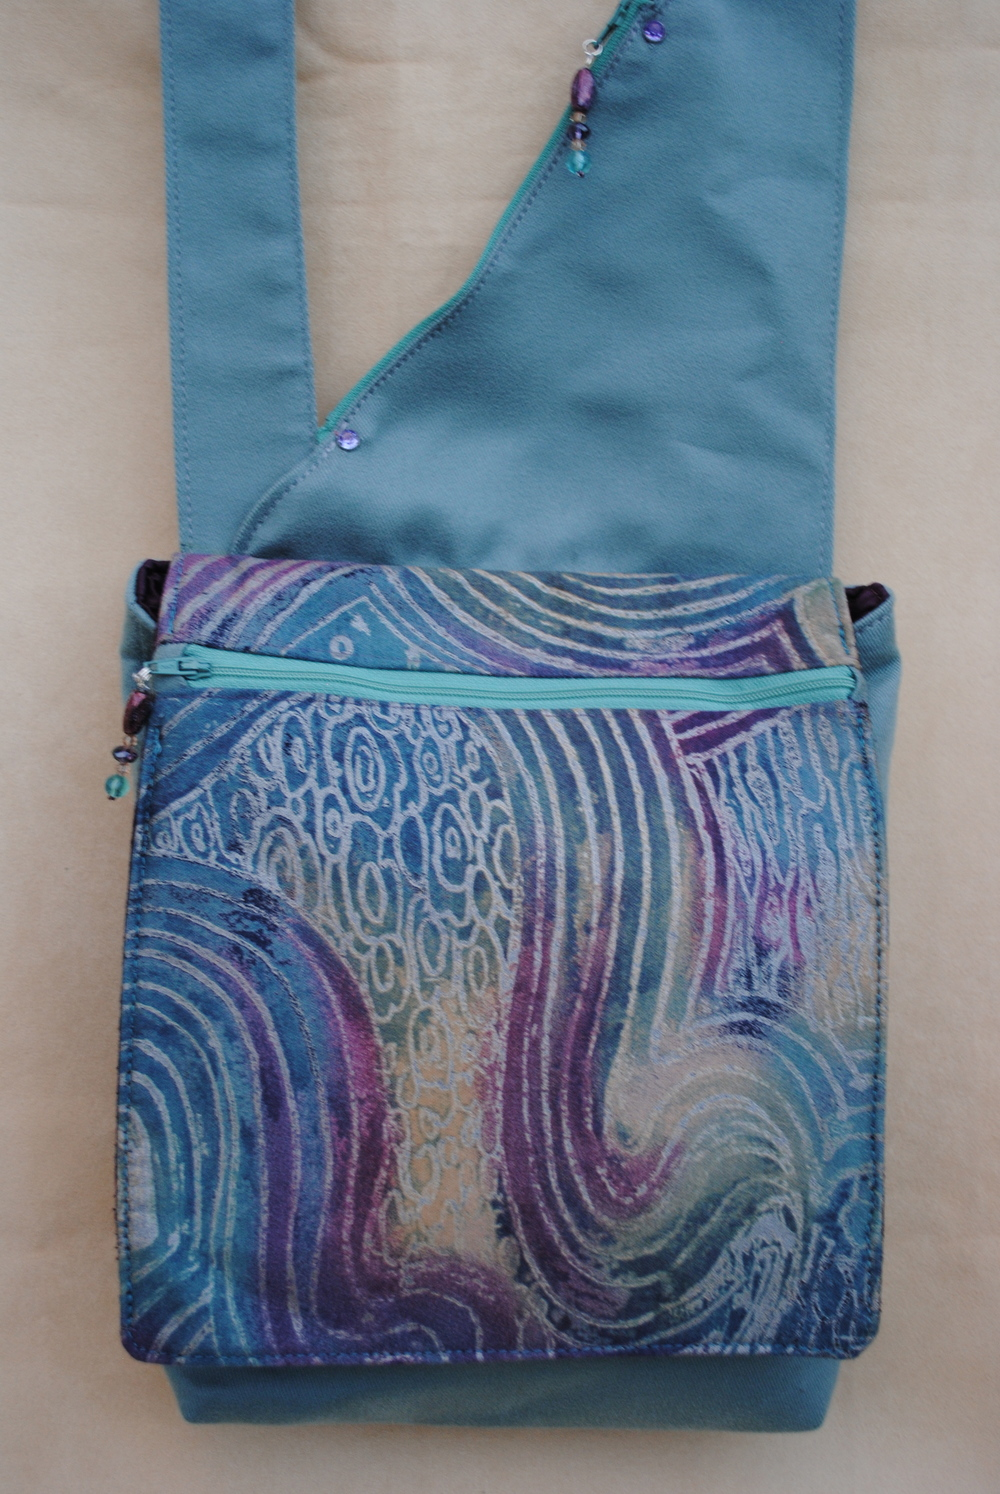 Xanadu Purple and Teal Messenger